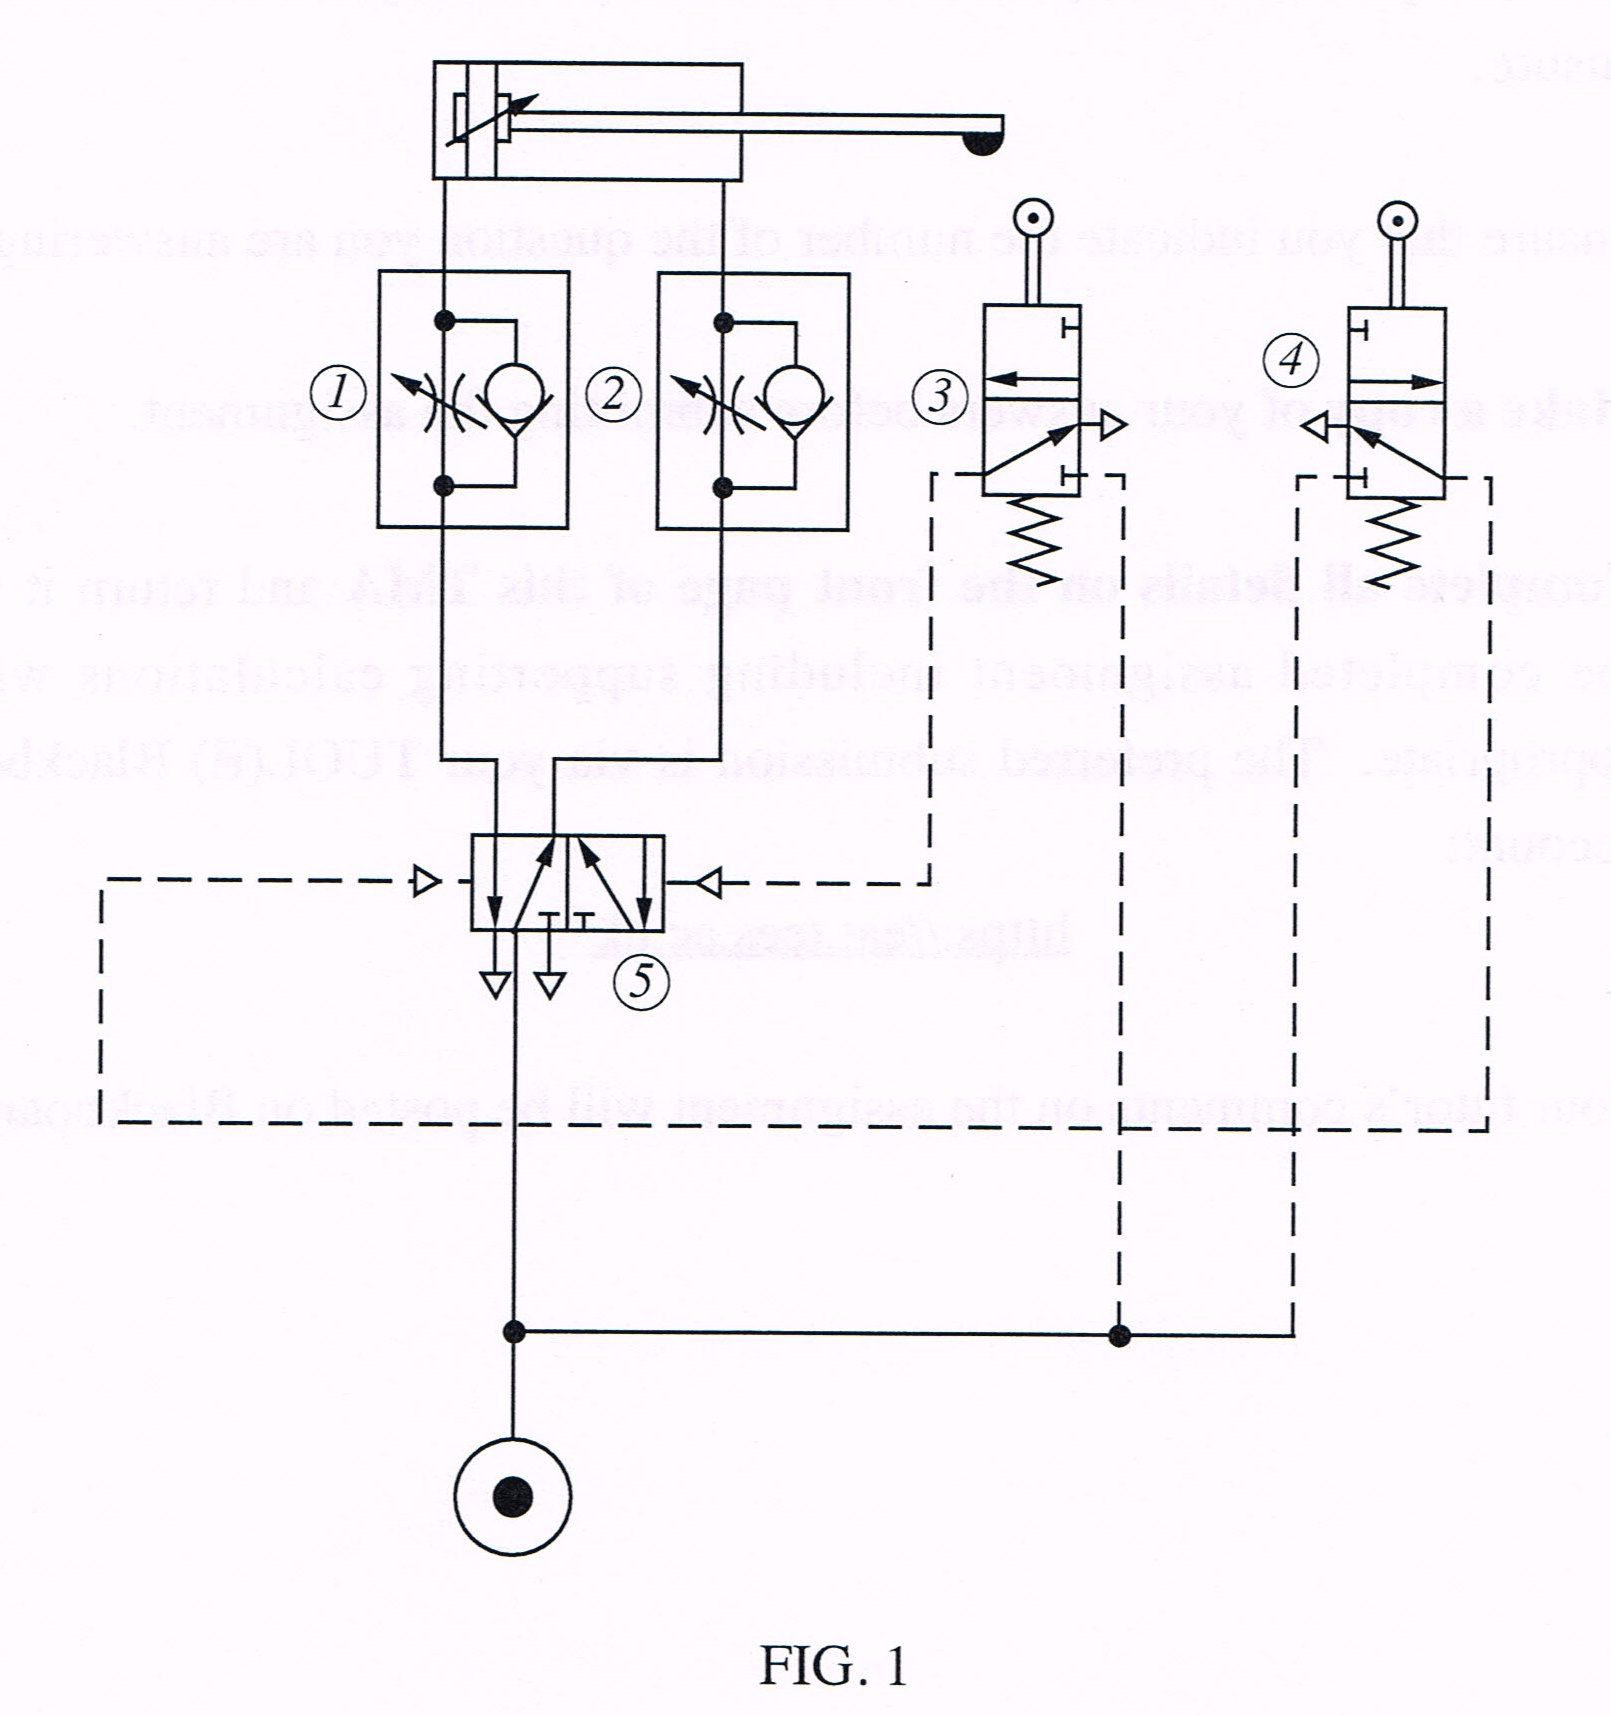 [WRG-5568] Pneumatics Wiring Diagram With Actuators